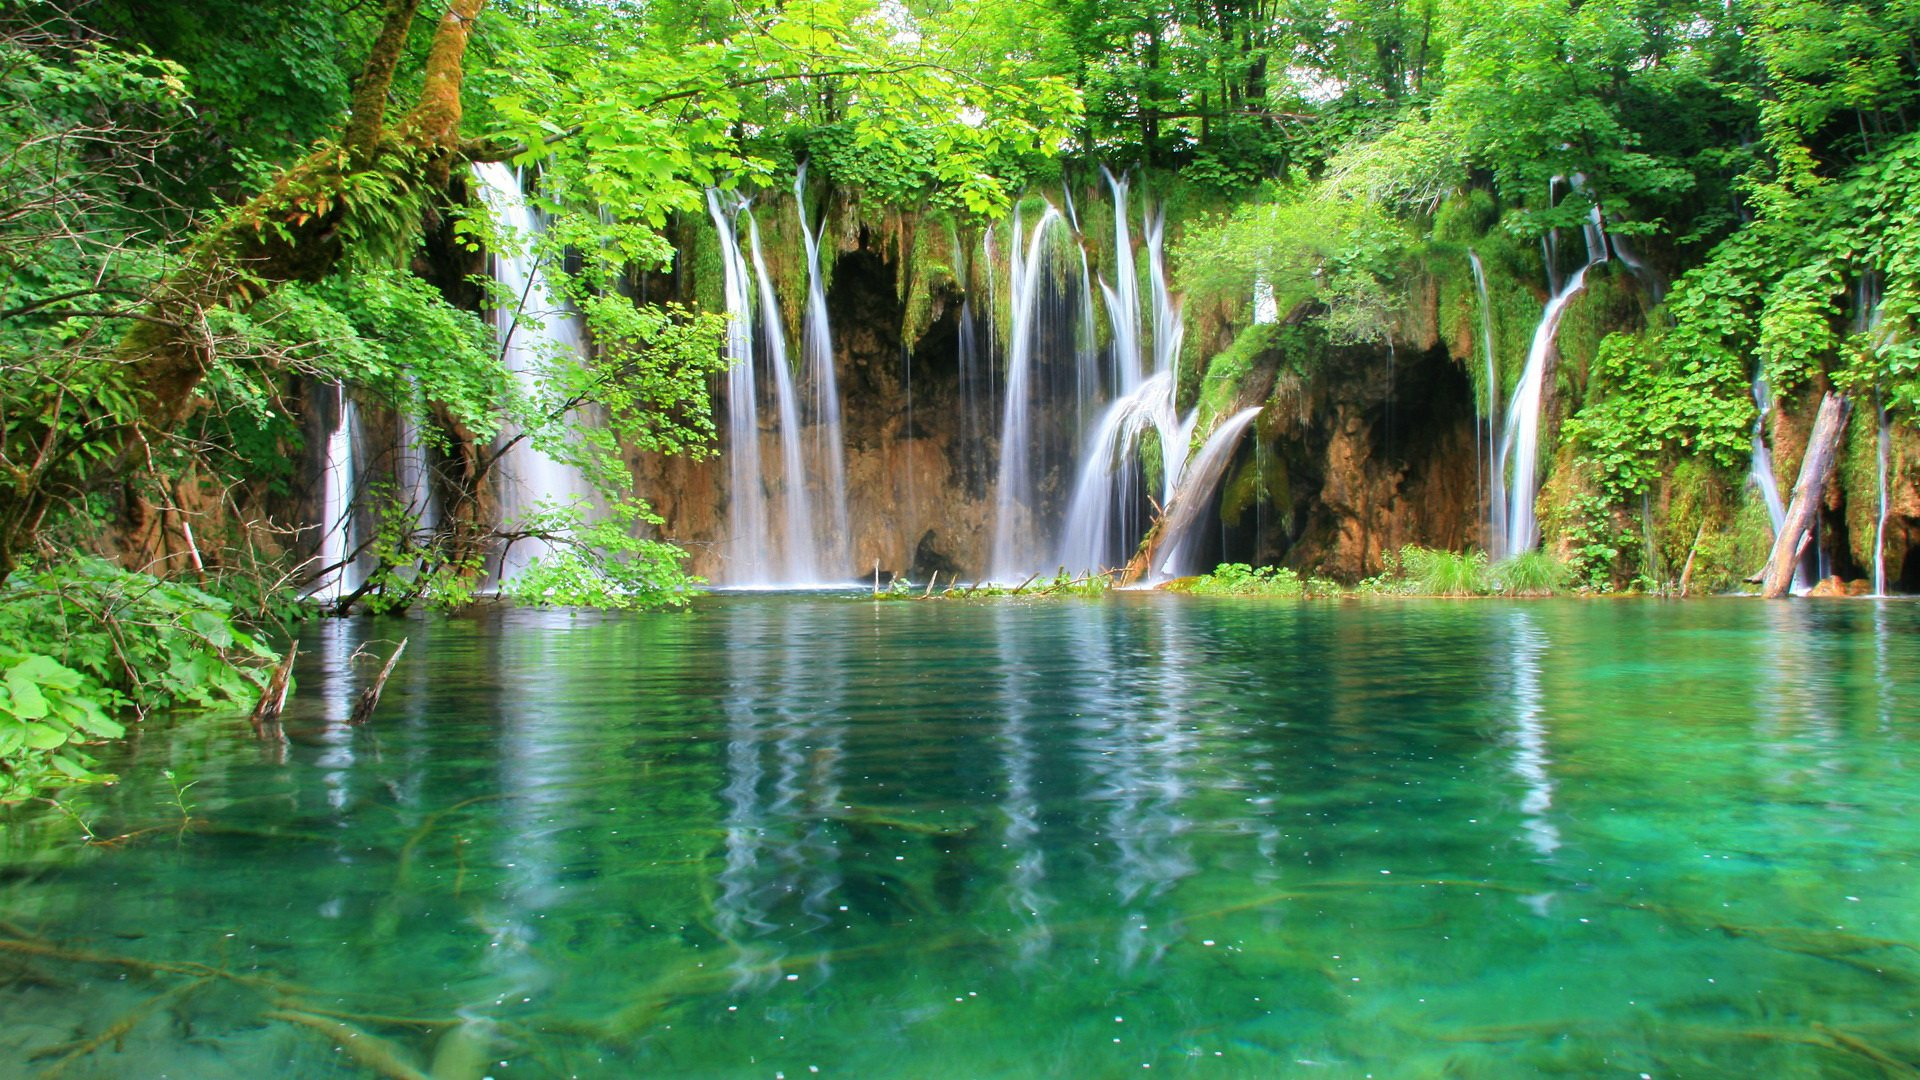 Plitvice Lakes National Park Croatia Wallpaper PNG Transparent 1920x1080